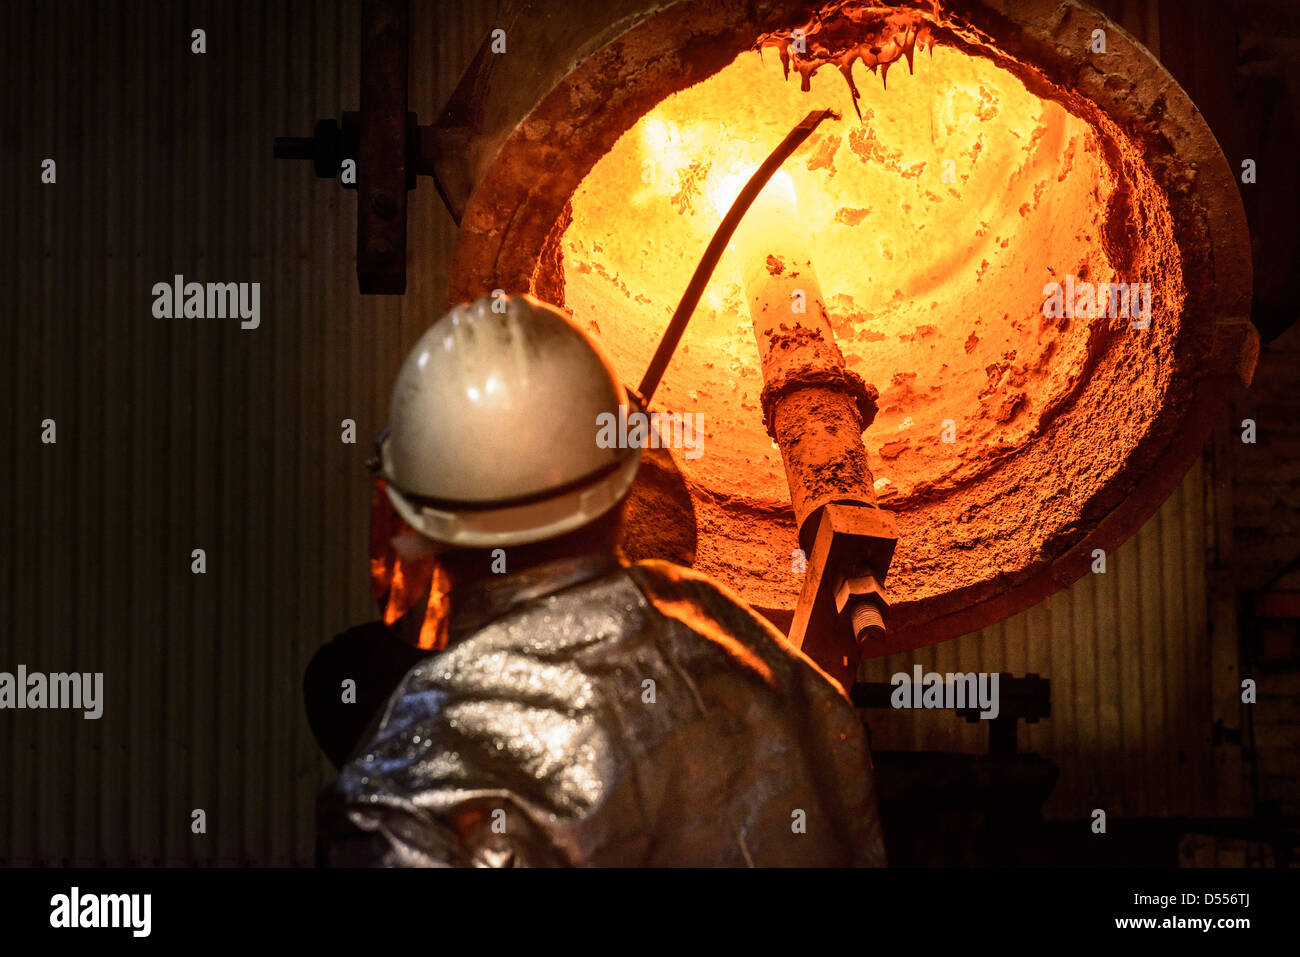 Workers cleaning metal flask in factory - Stock Image